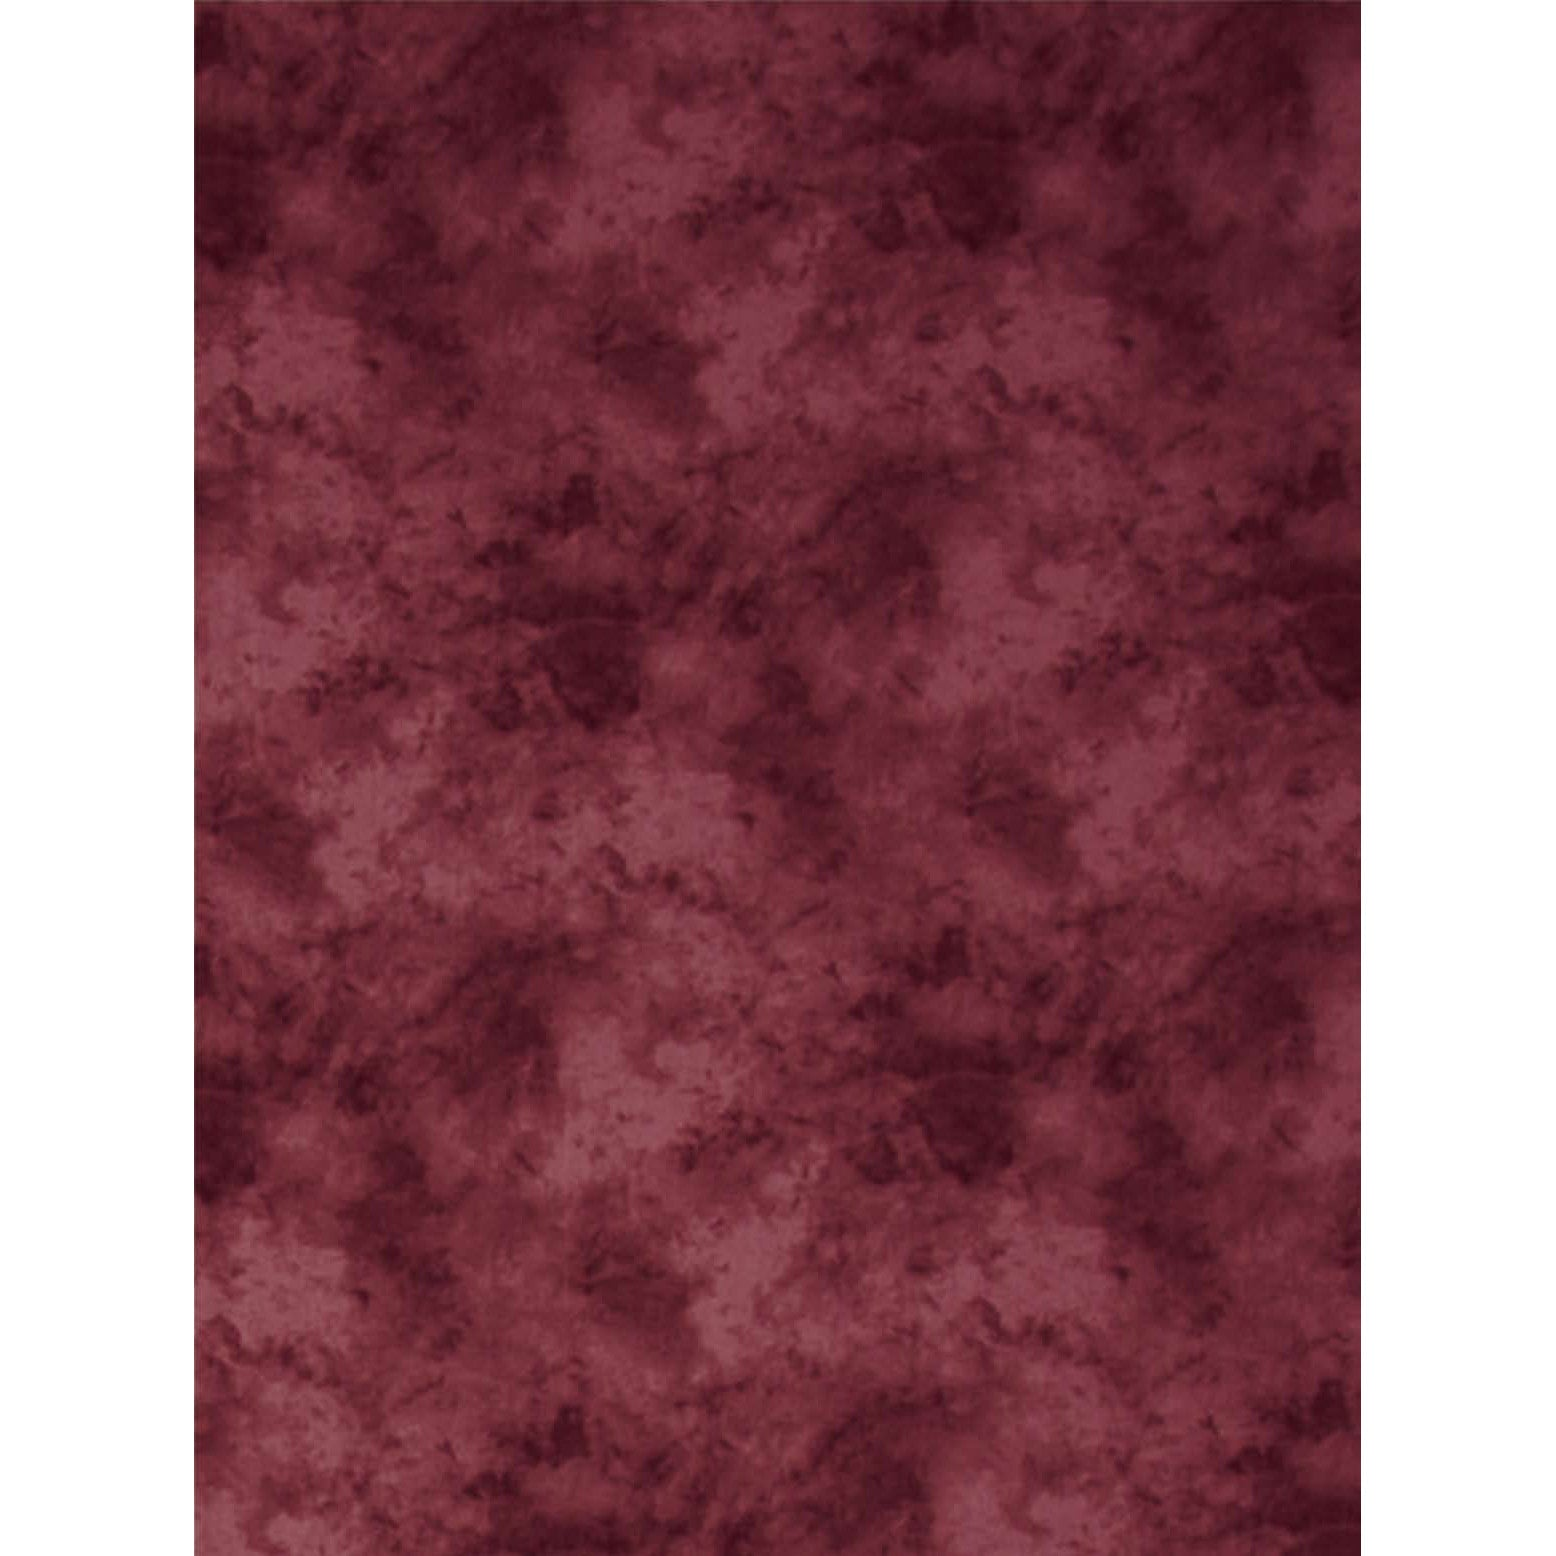 ProMaster Cloud Dyed Backdrop - 10'x12' - Red